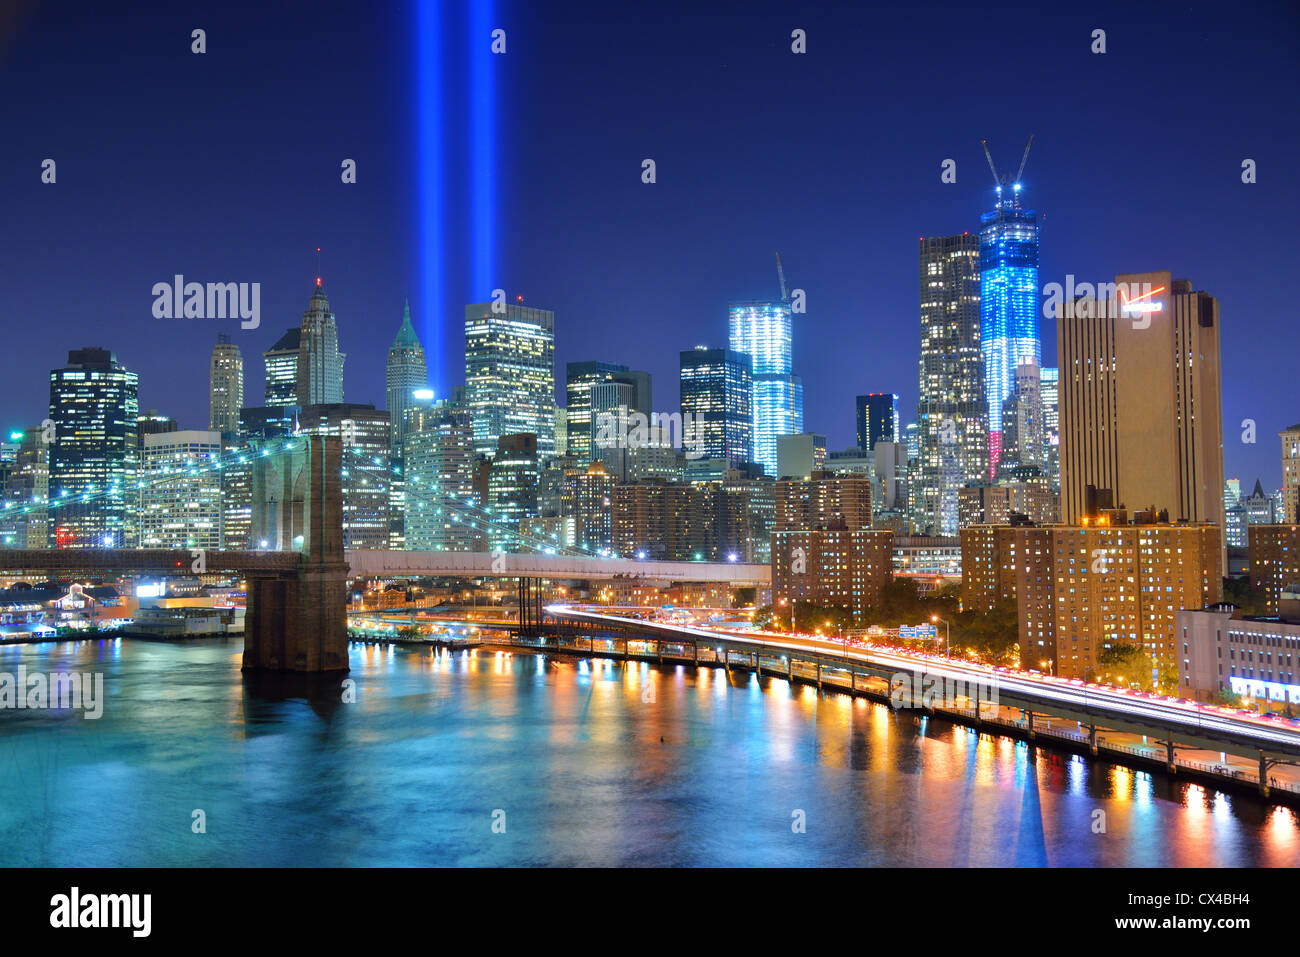 New York city and Tribute in light on 9/11. - Stock Image